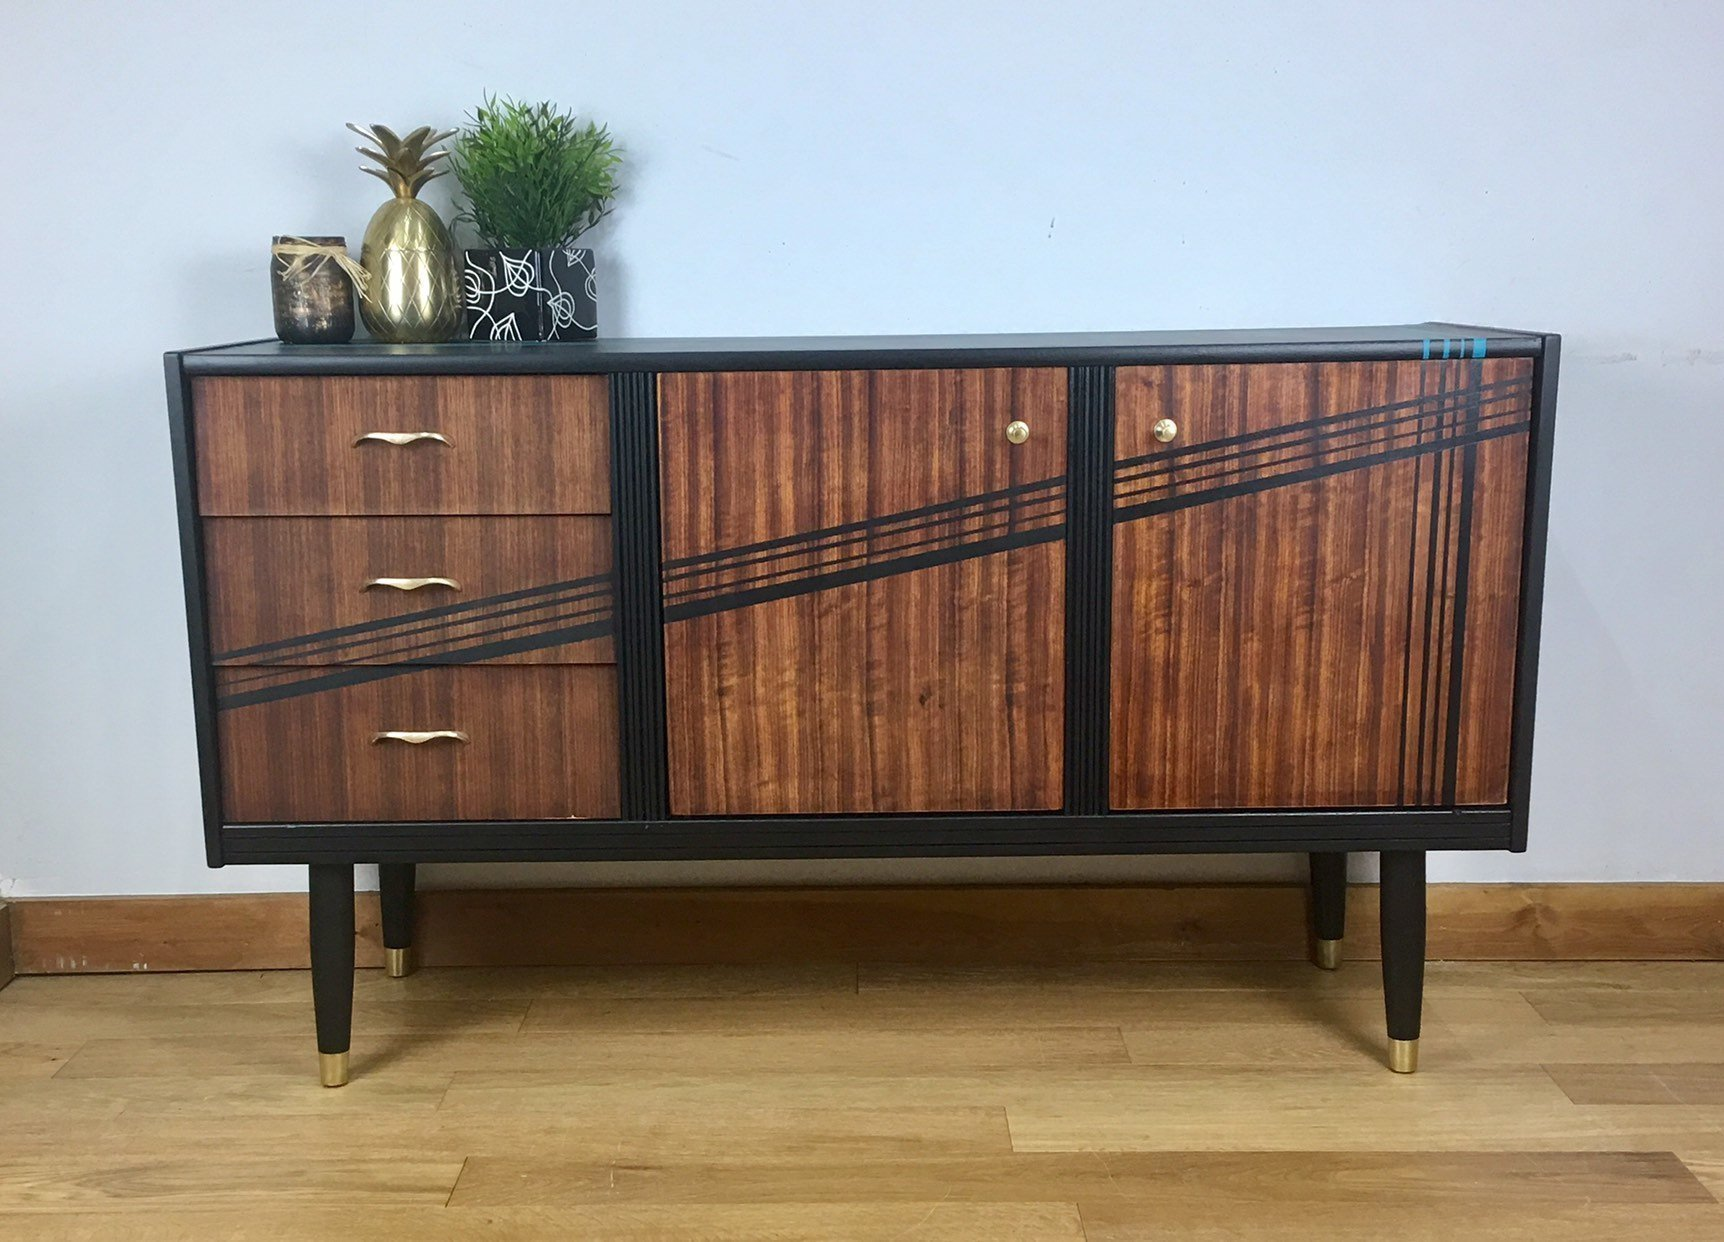 Midcentury Upcycled Sideboard Retro Sideboard Retro Living Room Furniture Hand Painted Furniture Vinterior